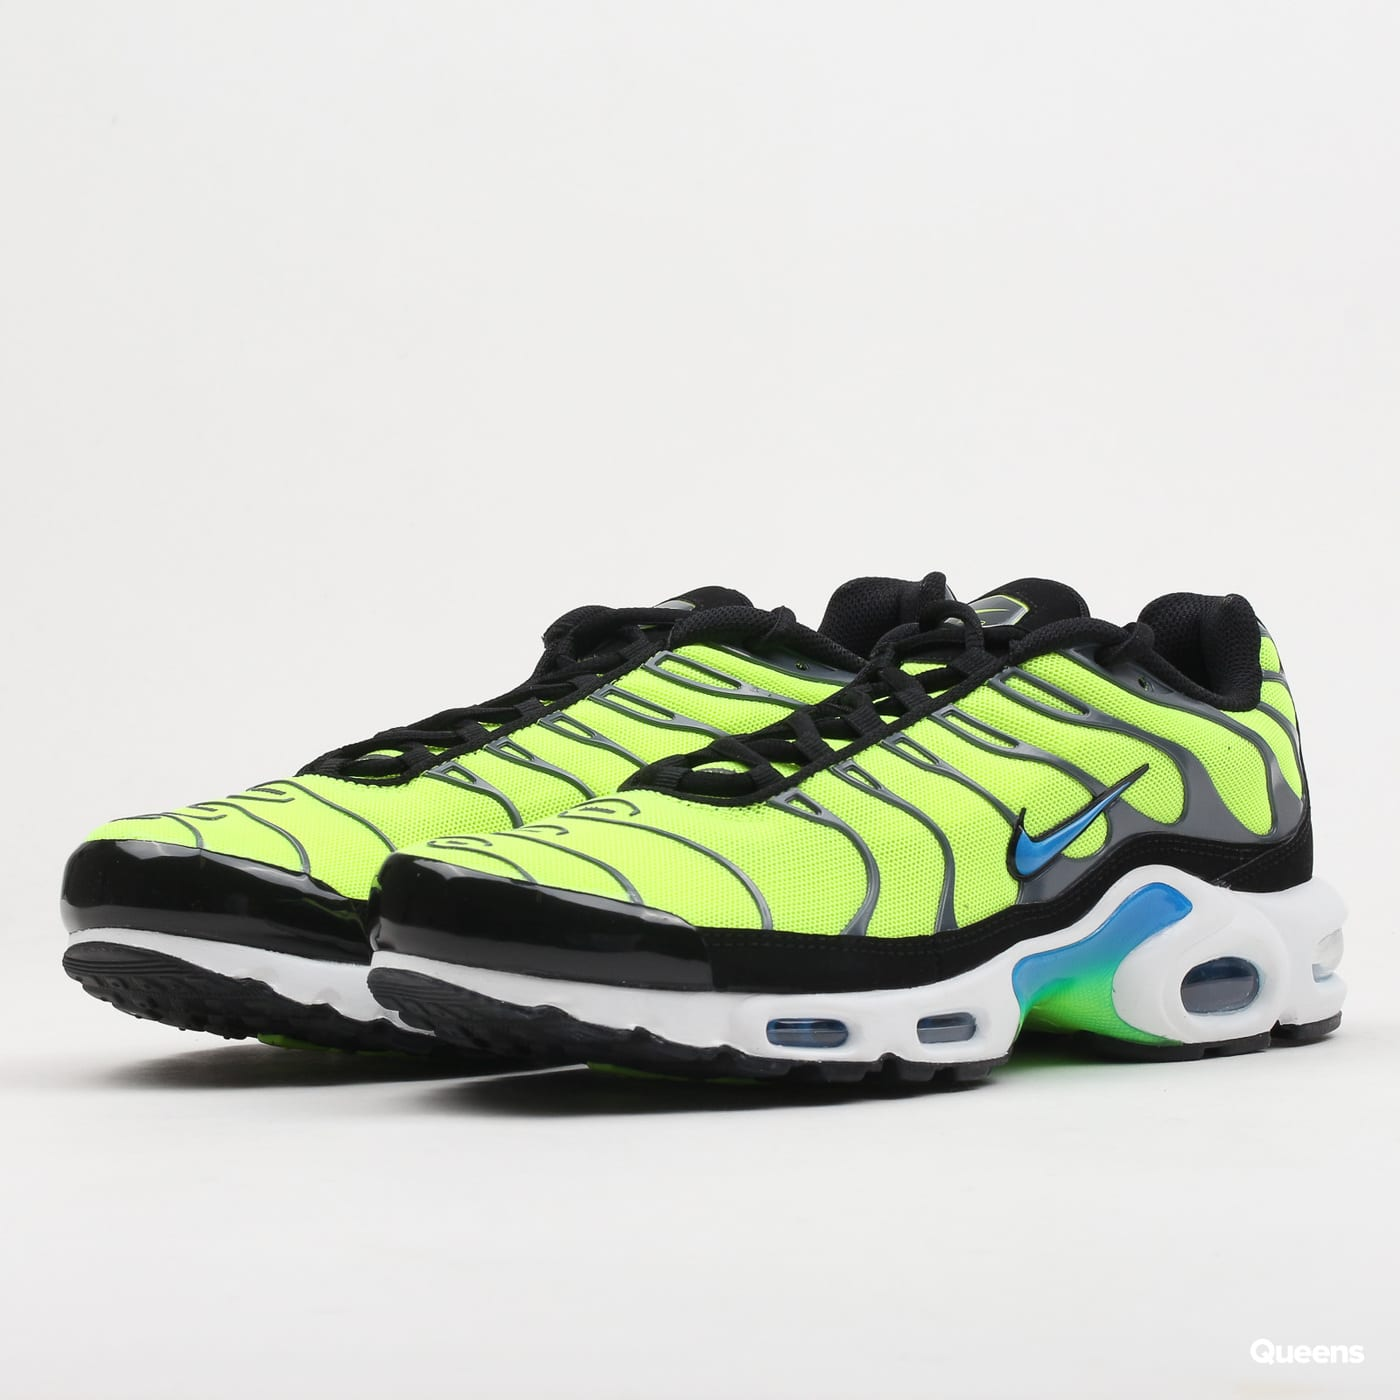 new product deb45 5c9b3 Boty Nike Air Max Plus (852630-700) – Queens 💚